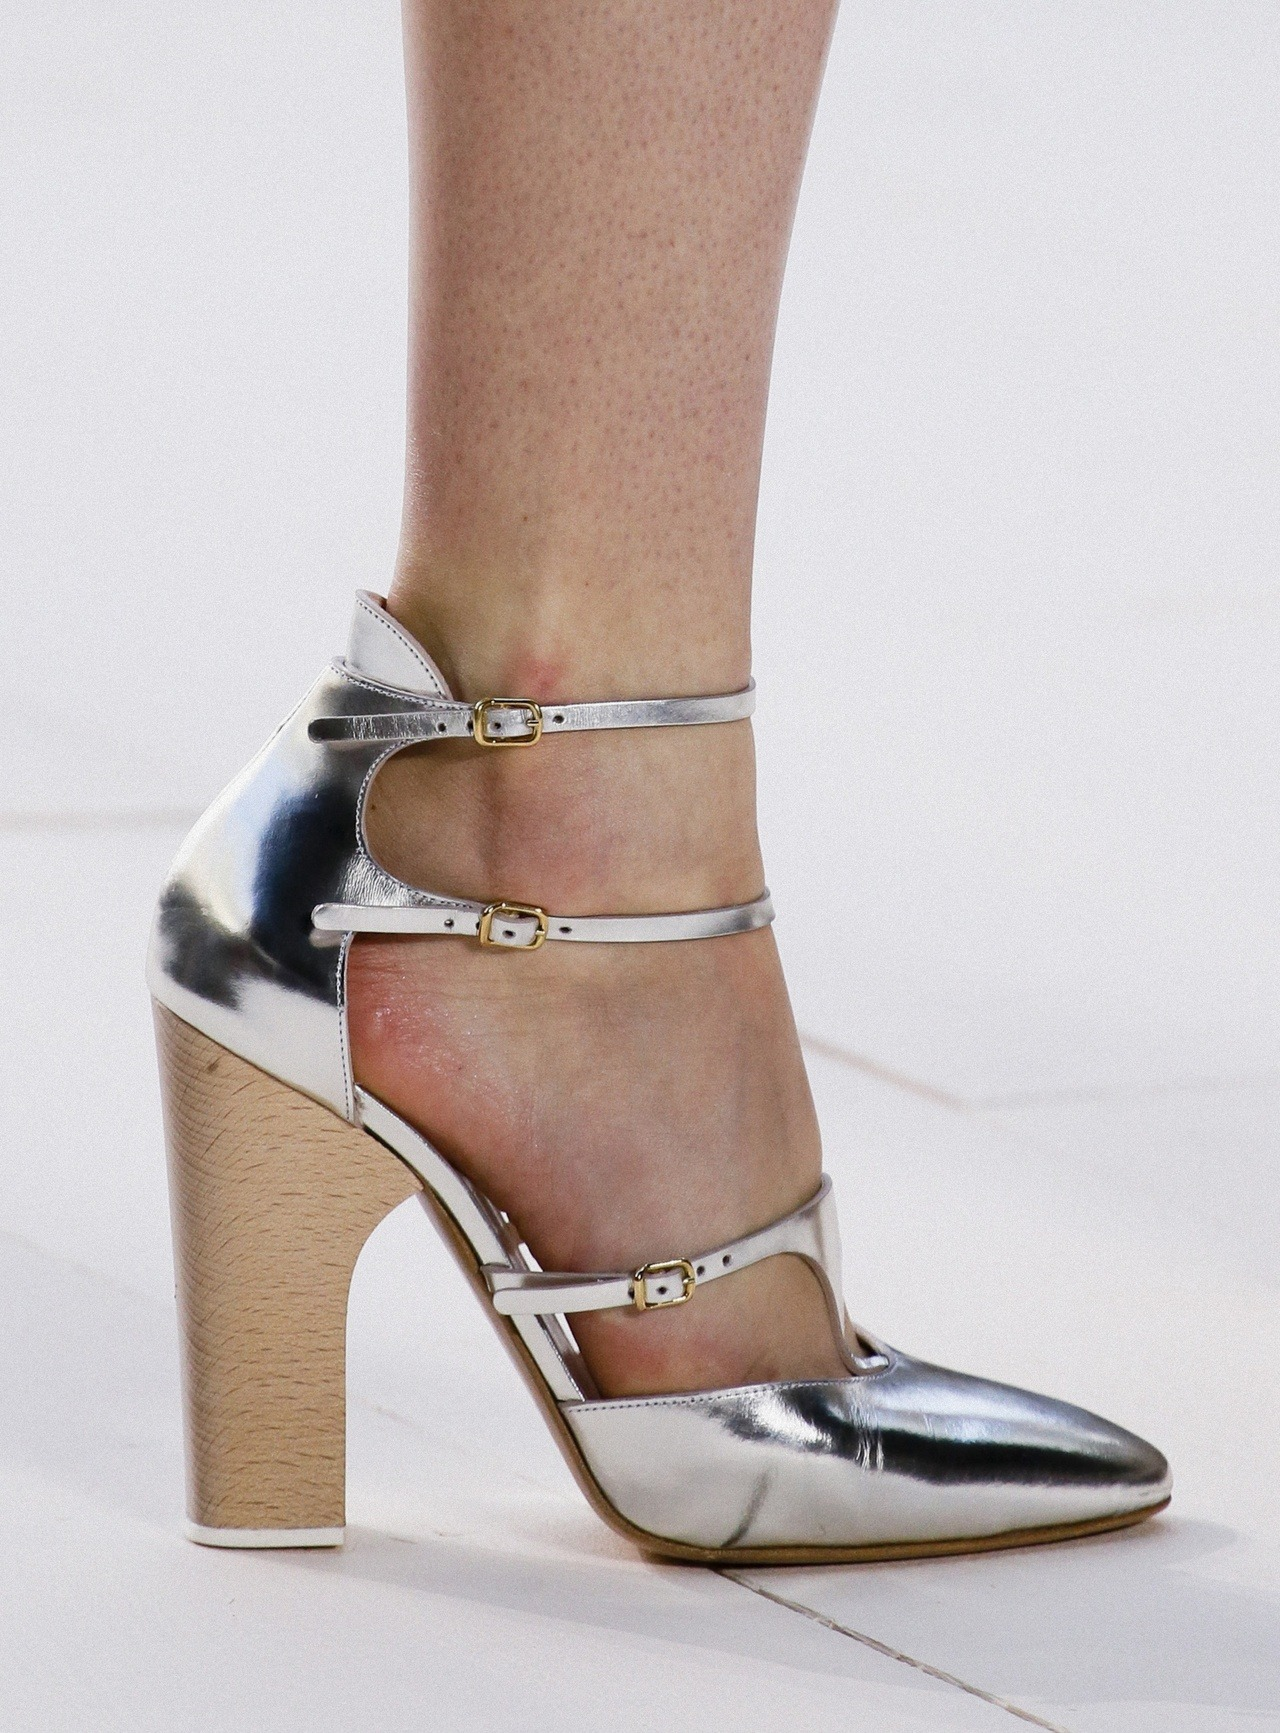 shoes @ Chloé Spring 2013.